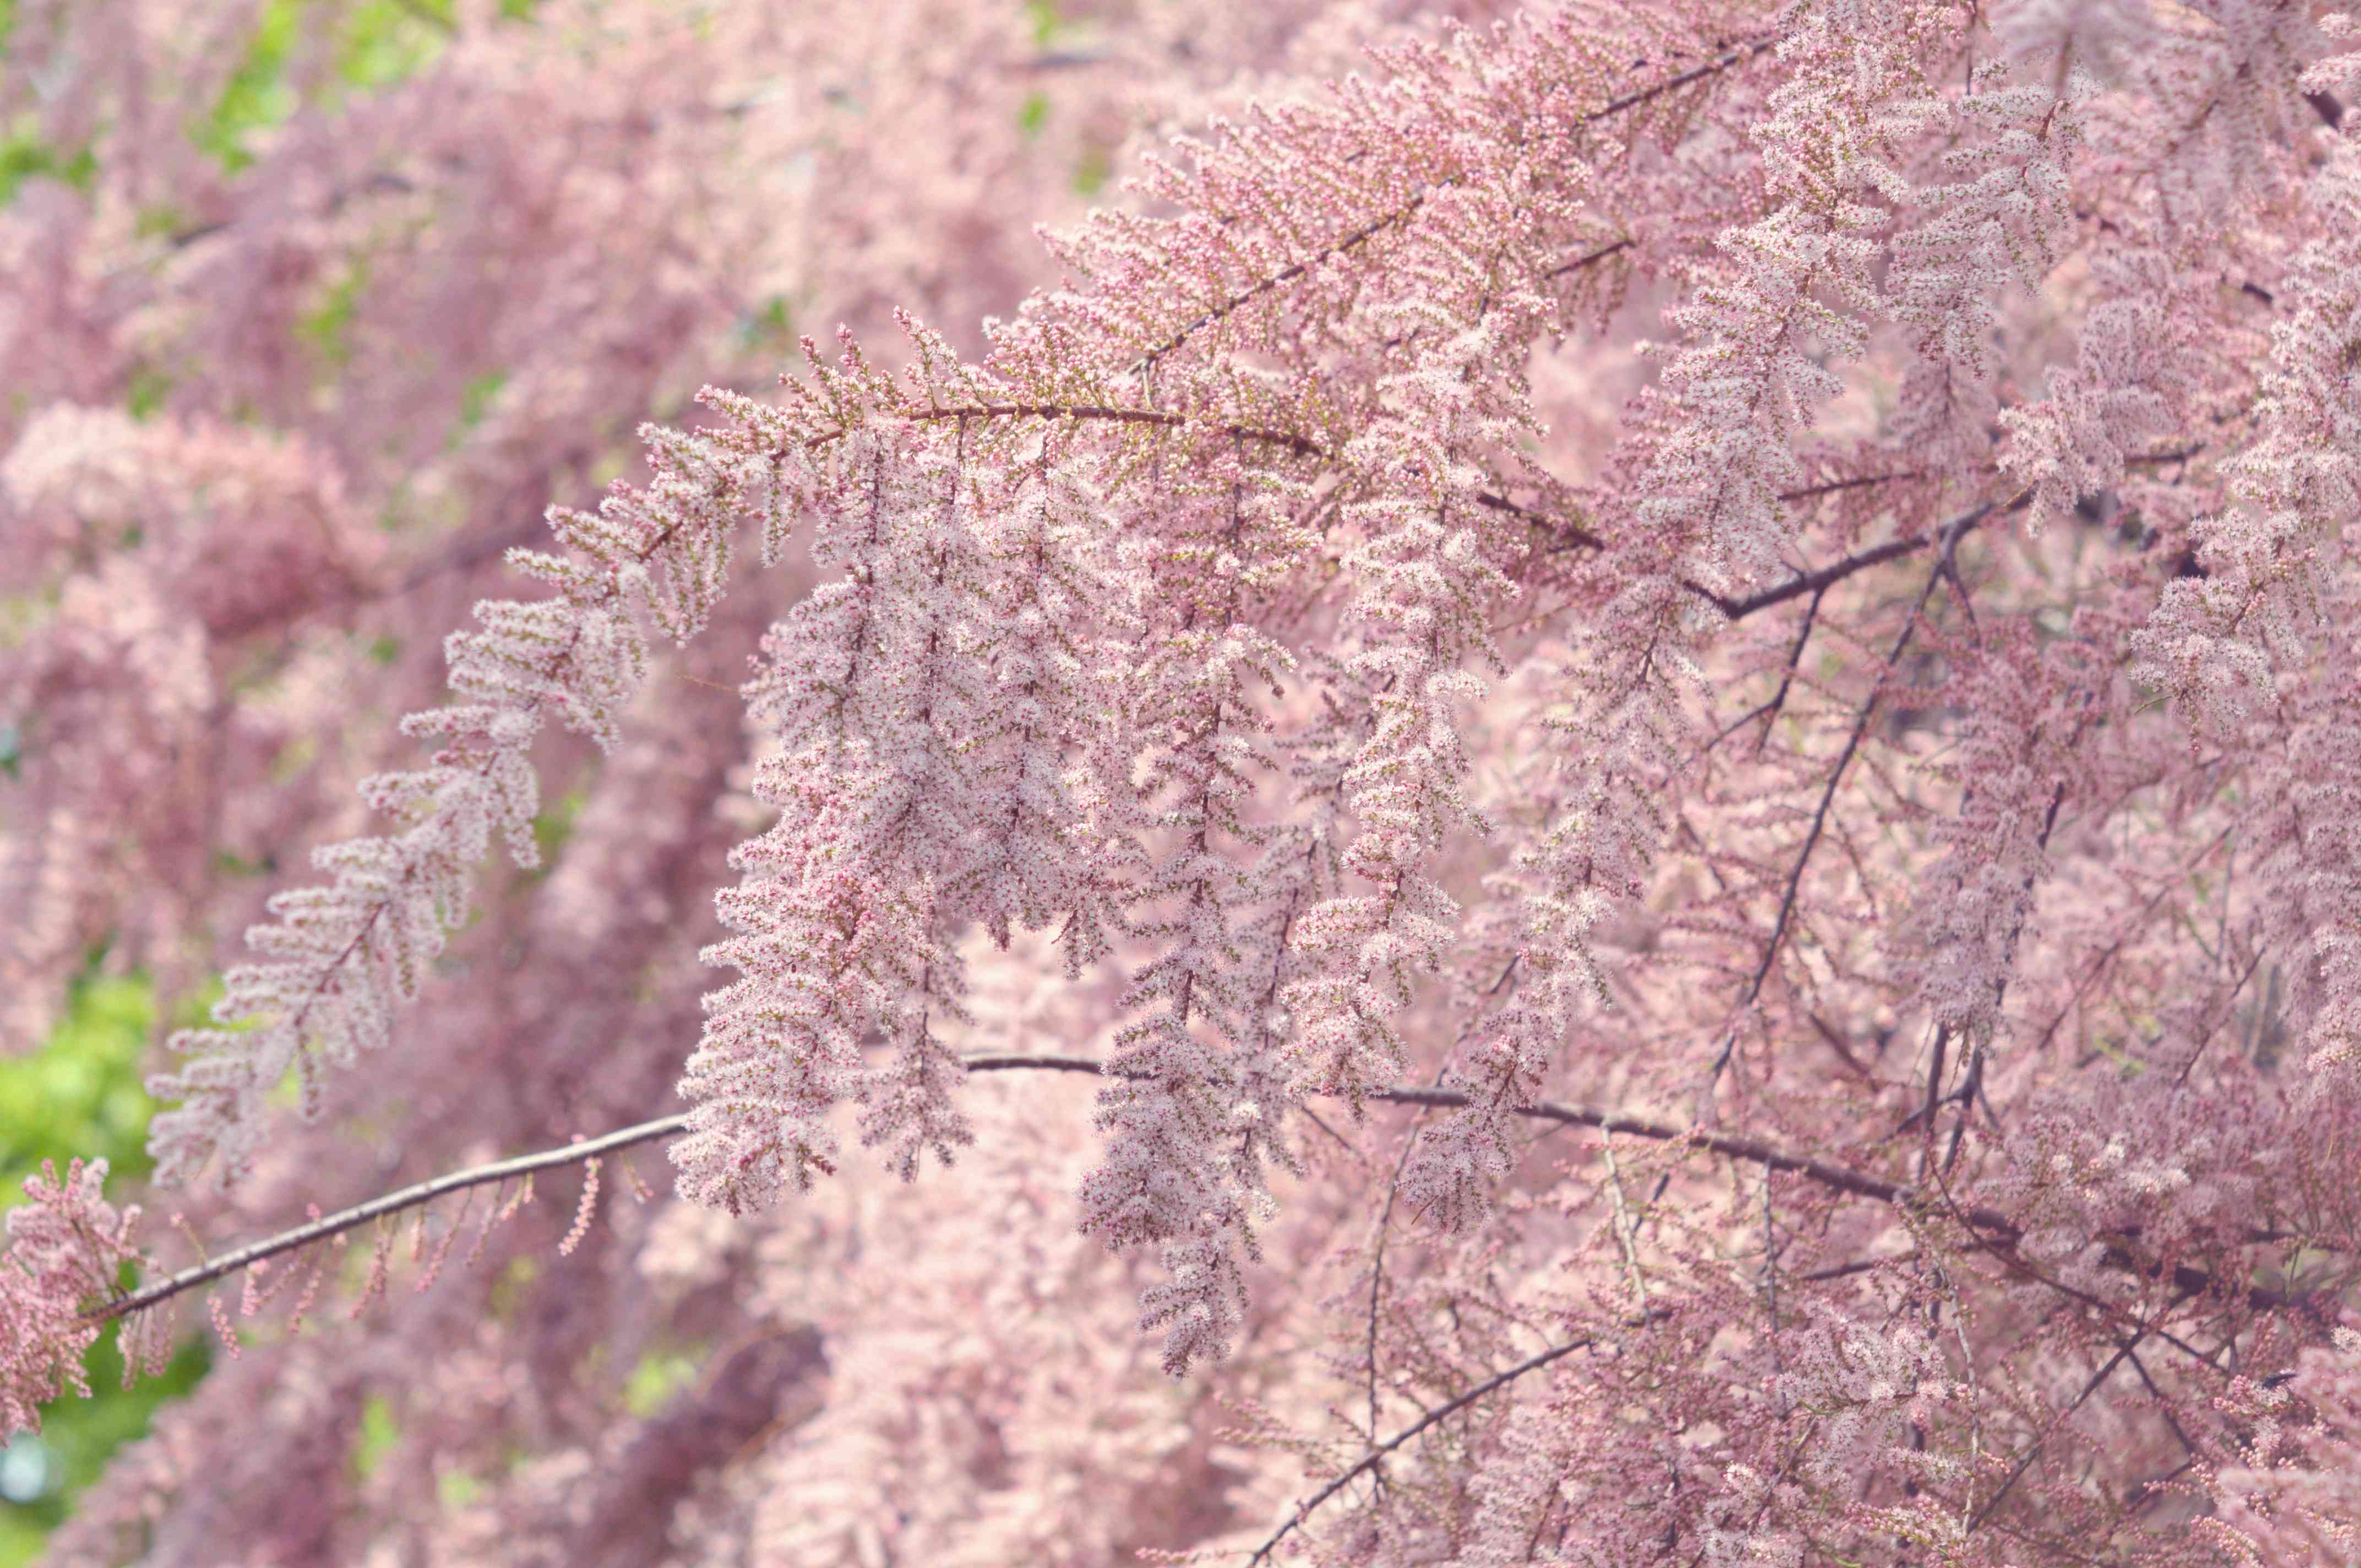 Tamarisk tree with small pink flowers covering thin branches